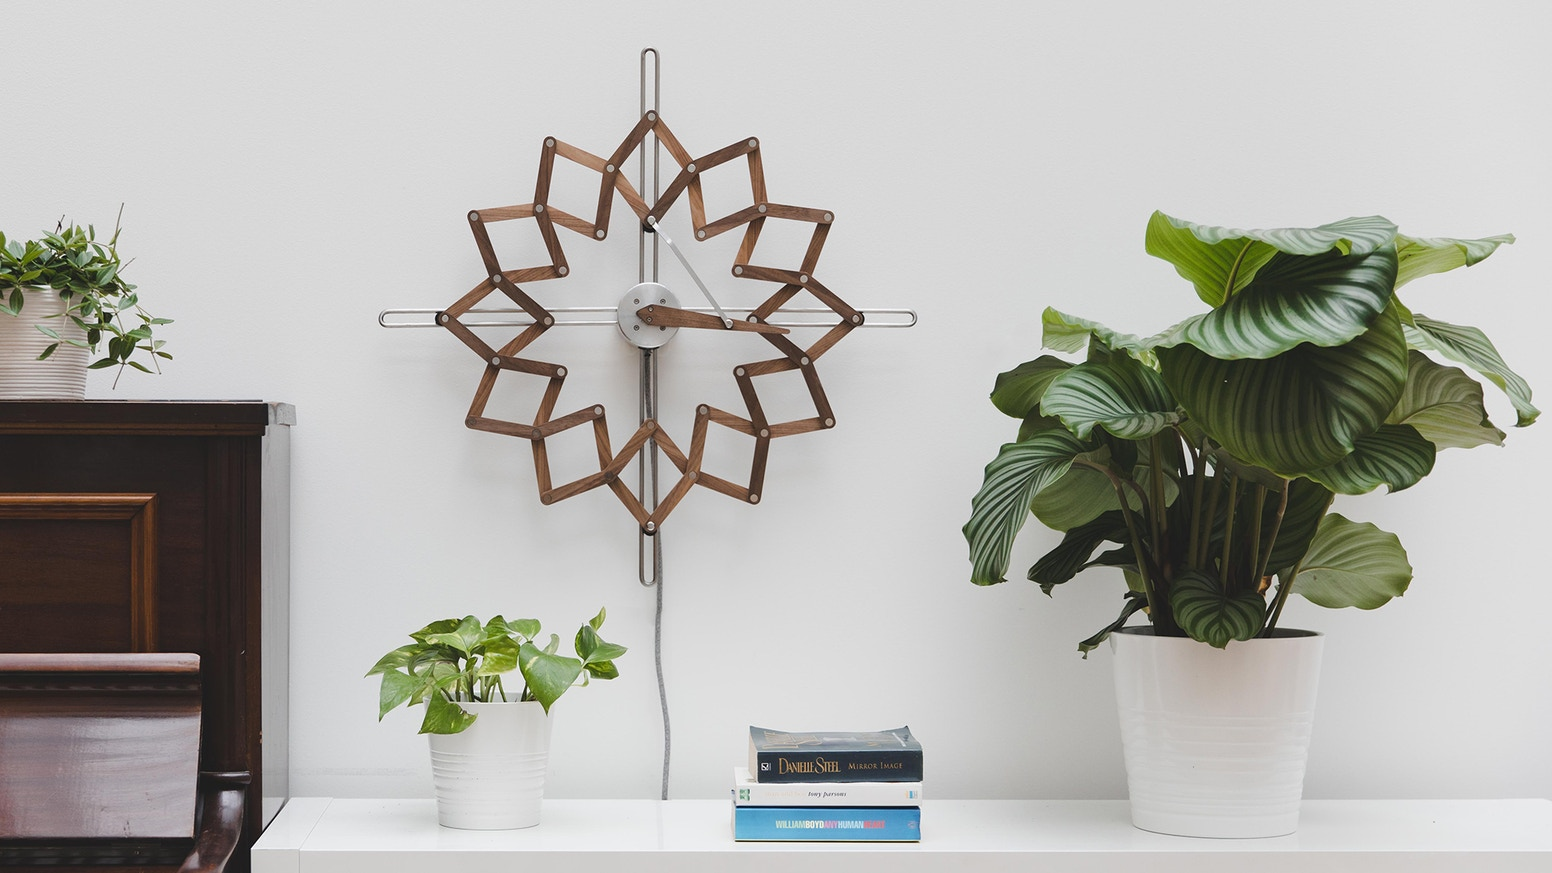 A clock that turns passing hours into moving art, it gradually changes shape throughout the day to inspire a more relaxed view of time